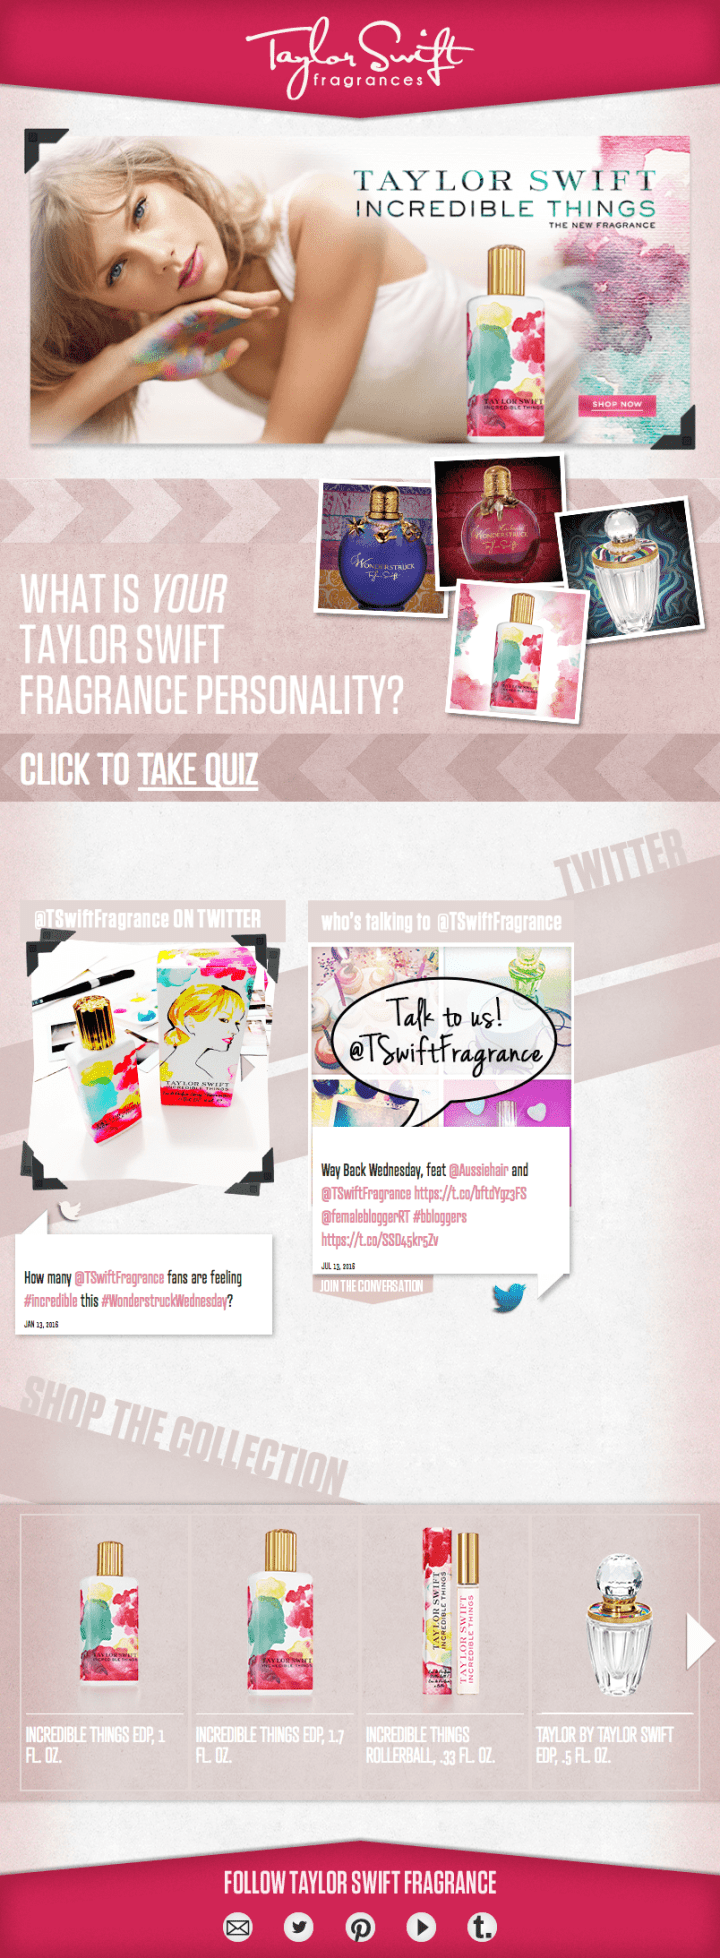 taylor-swift-facebook-app